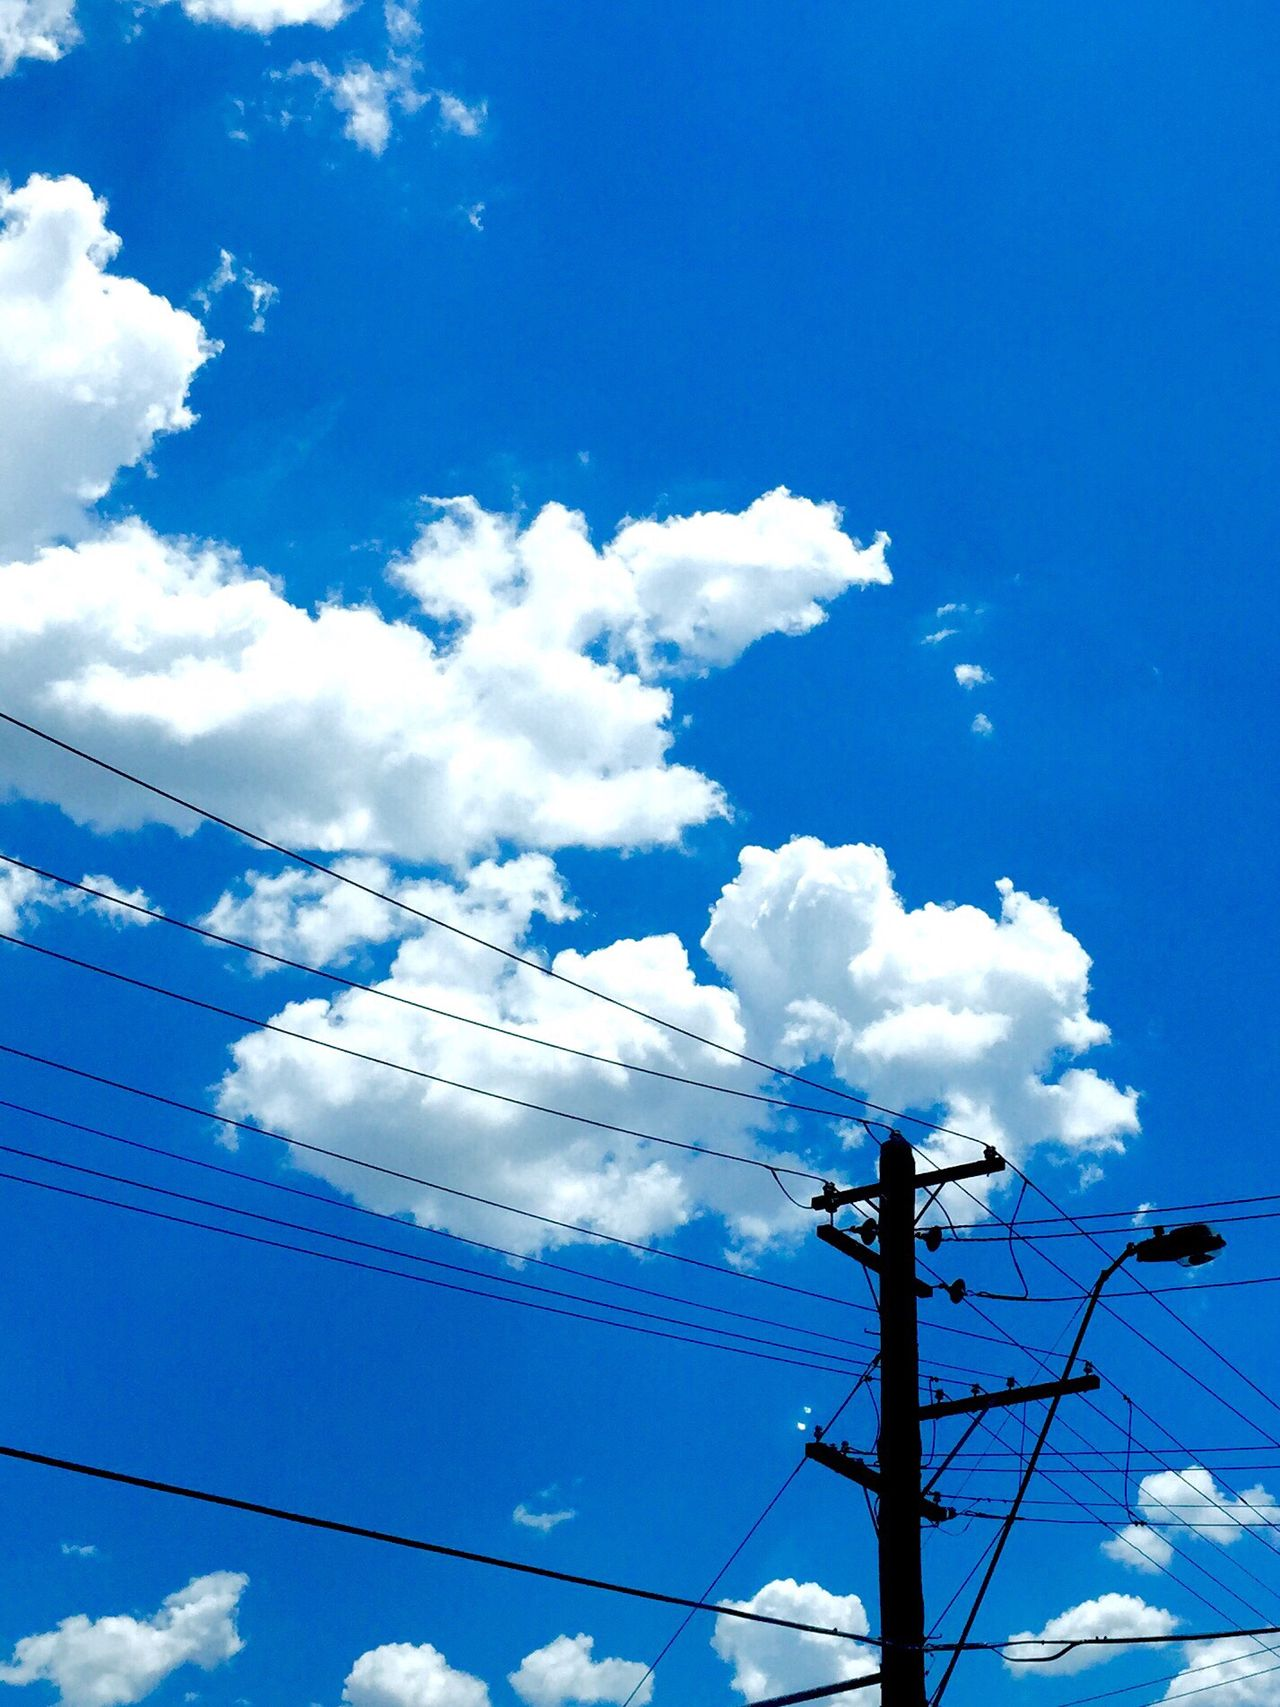 Blue Aussie skyscape with old telephone pole. LLow Angle ViewcCloud - SkysSkypPower SupplyeElectricity pPower Line cConnectioncCablefFuel And Power GenerationbBluenNo PeopleeElectricity PylontTechnologyoOutdoorsdDayNNatureeElectric PolefFirst Eyeem Photo